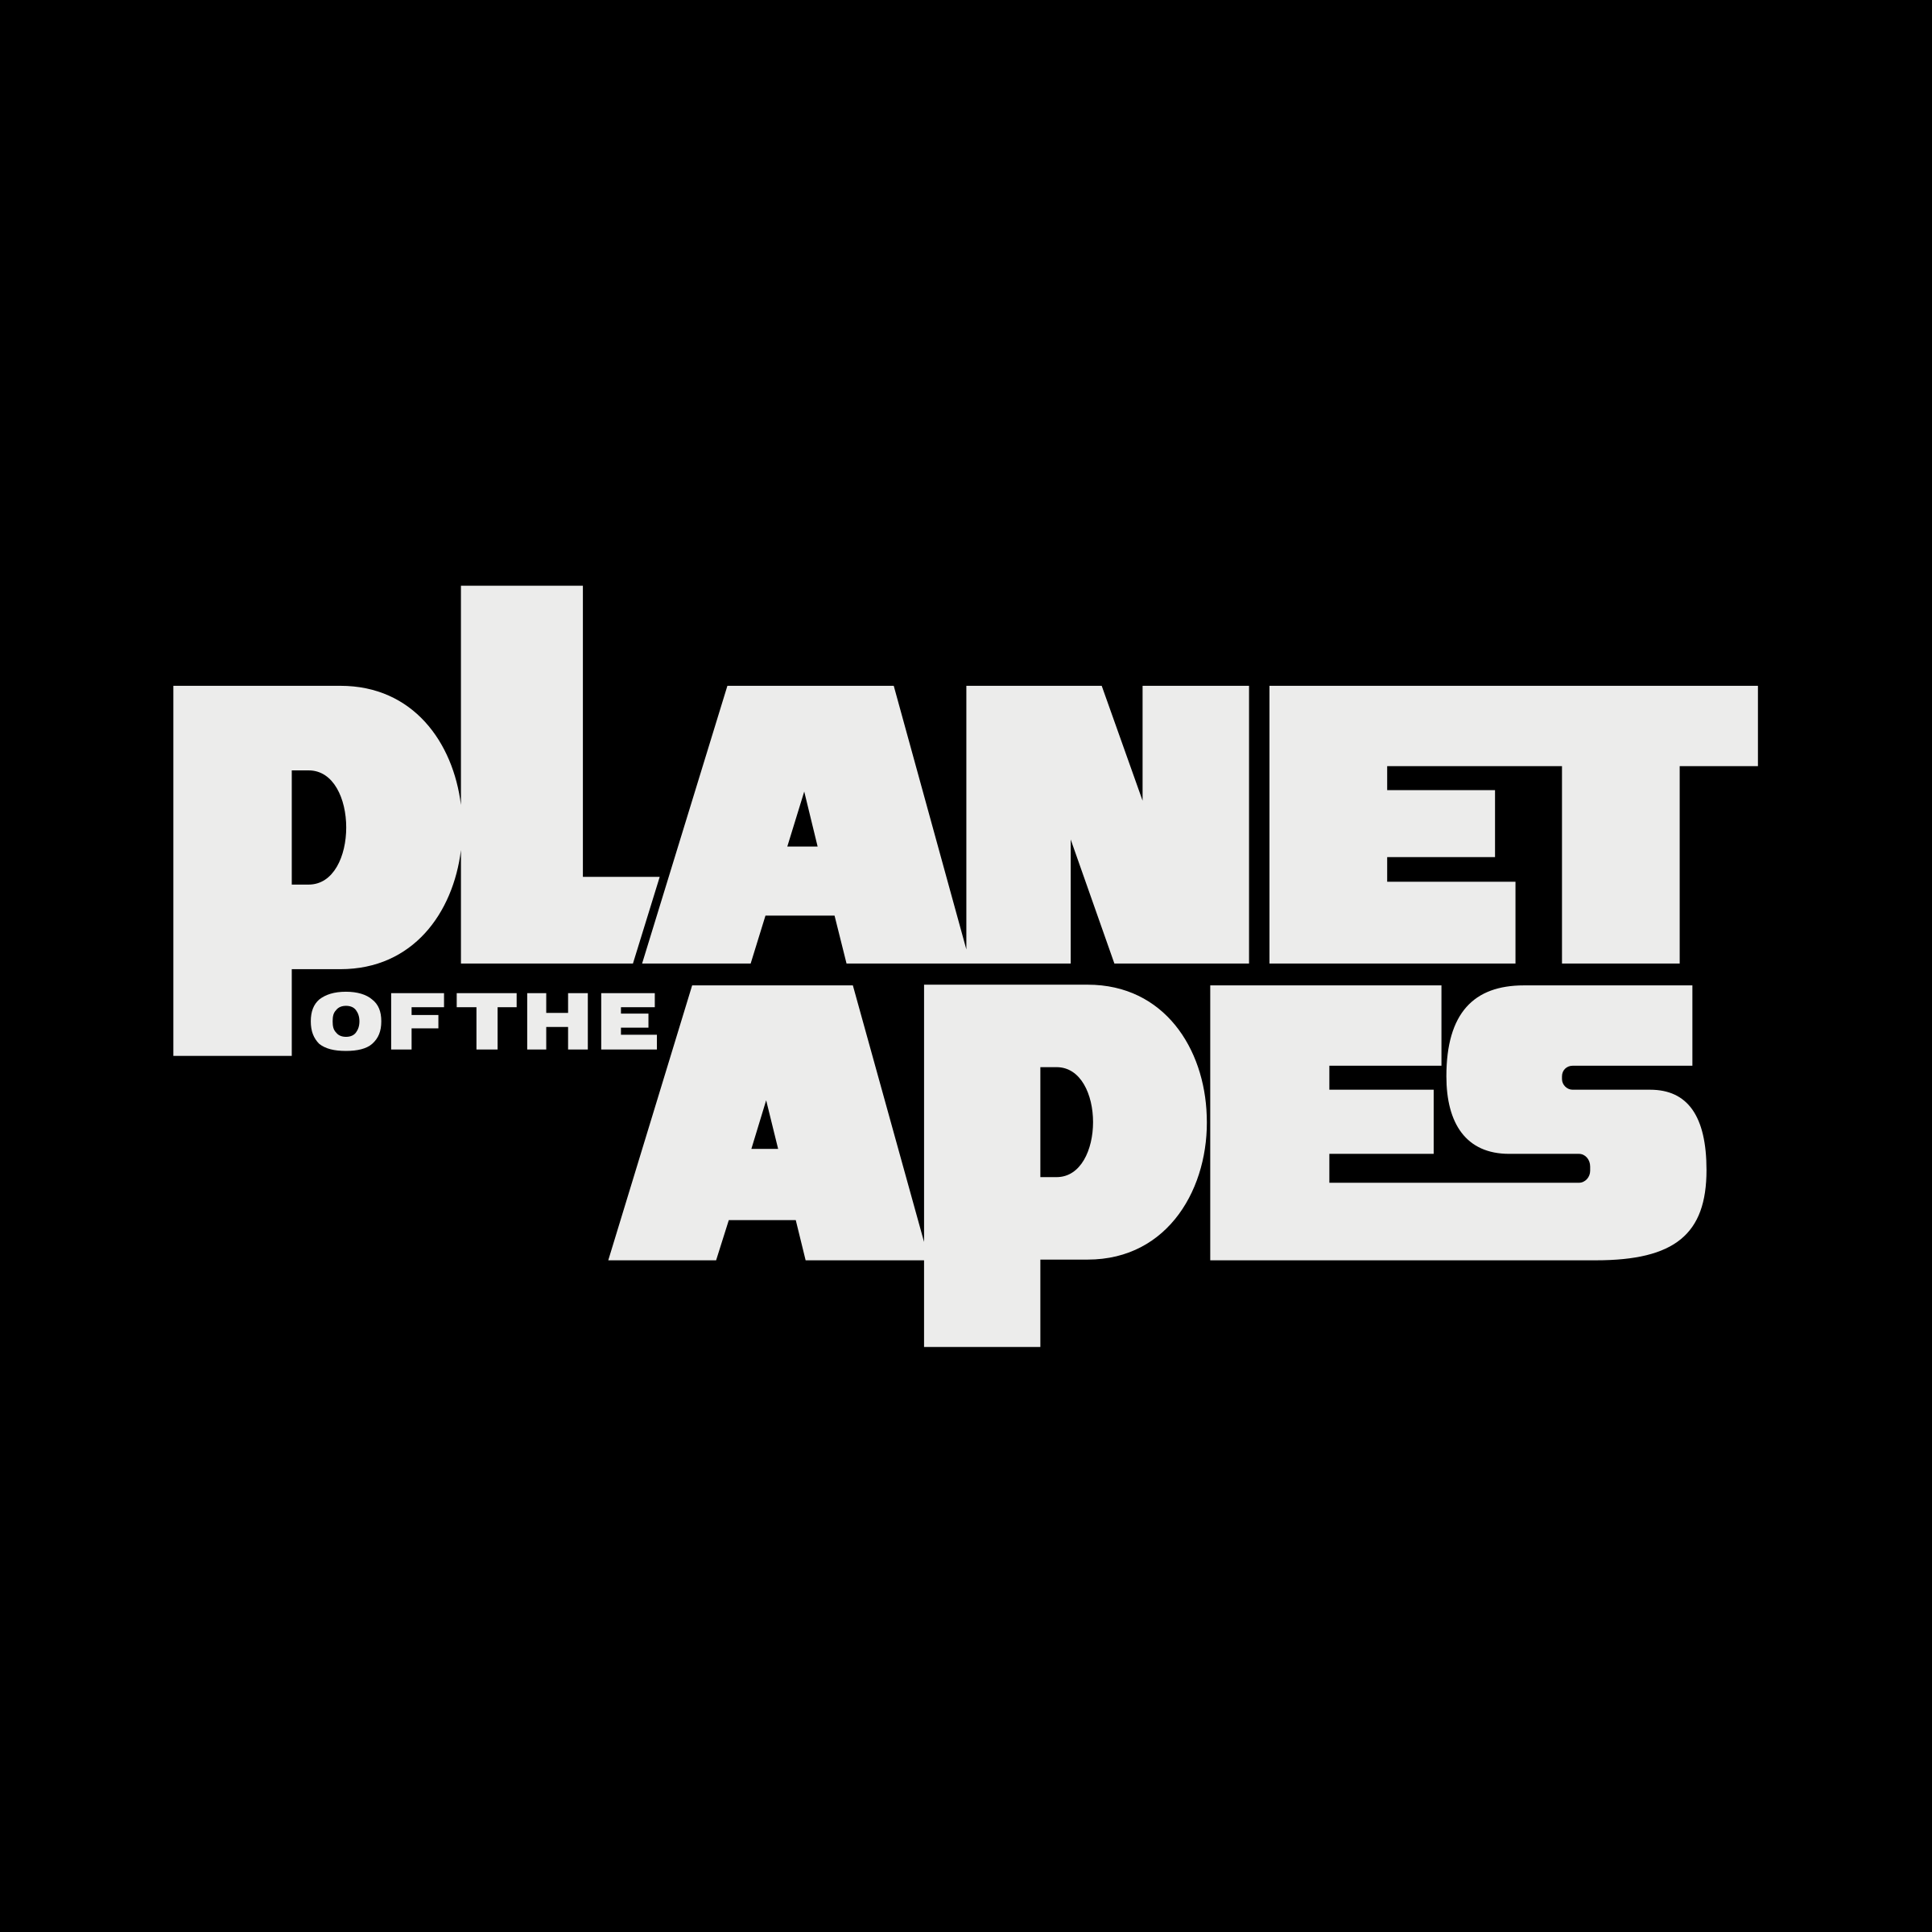 Planet of the Apes Logo | kesseljunkie